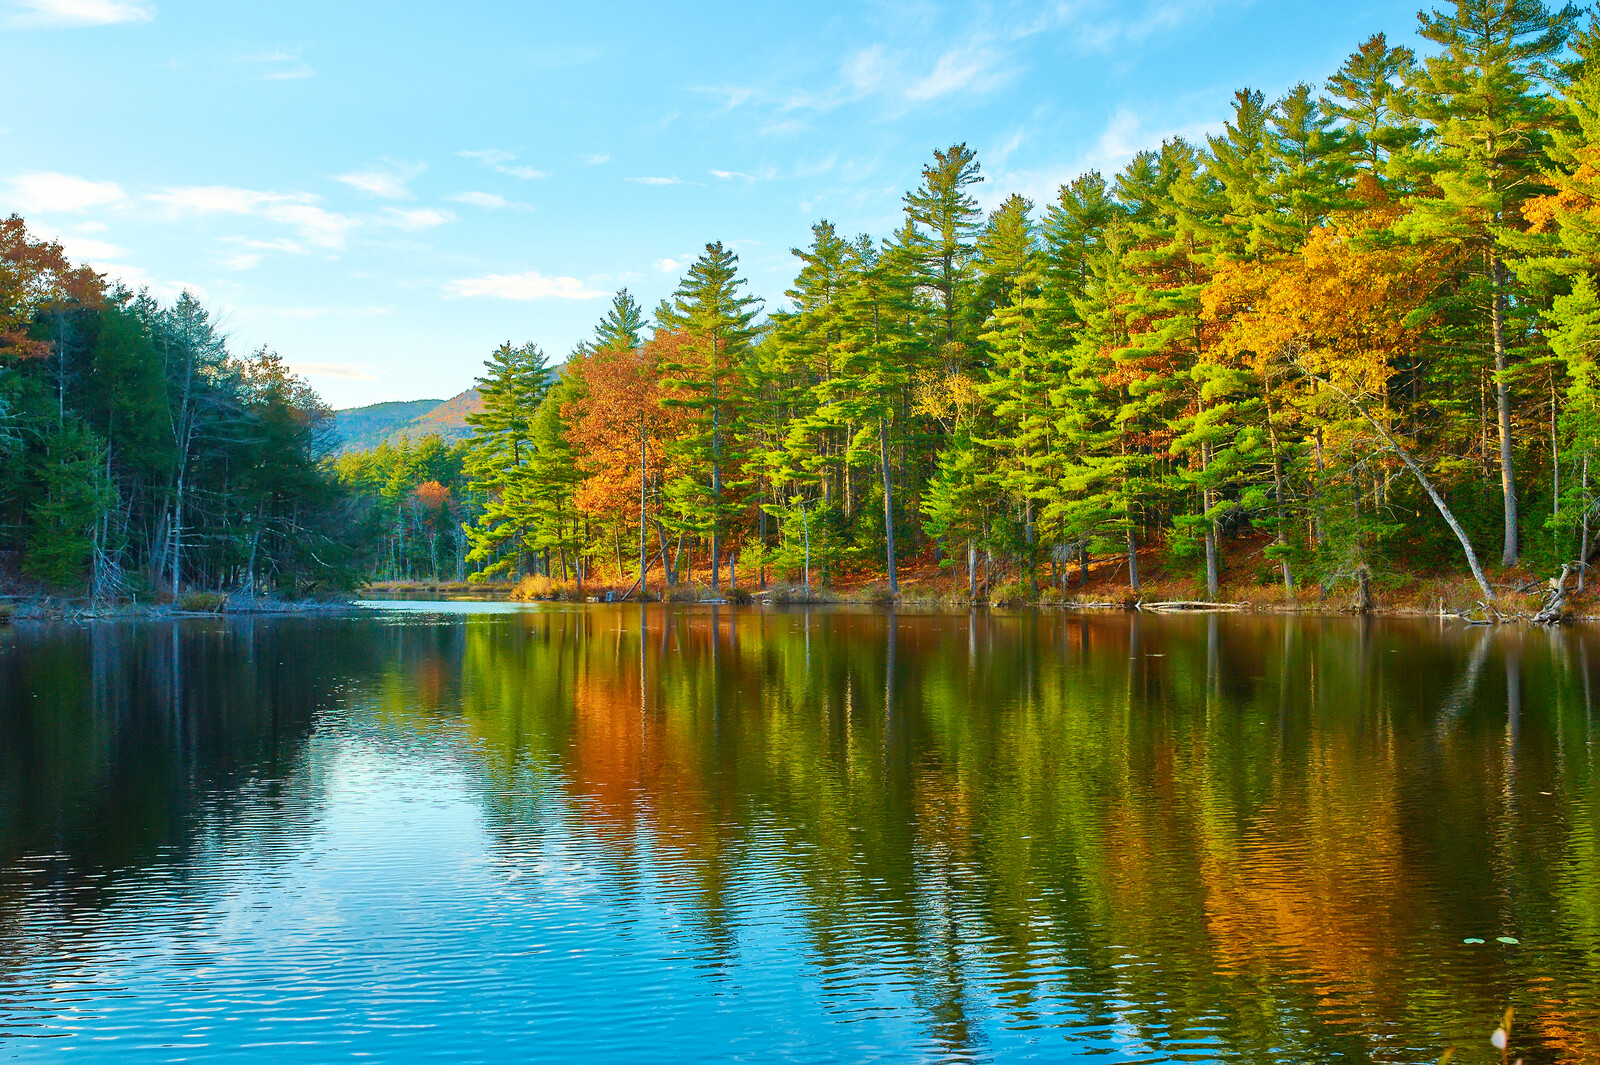 Best Places to Retire in New Hampshire-Pond in White Mountain National Forest, New Hampshire with colorful trees outlining the banks with blue skies